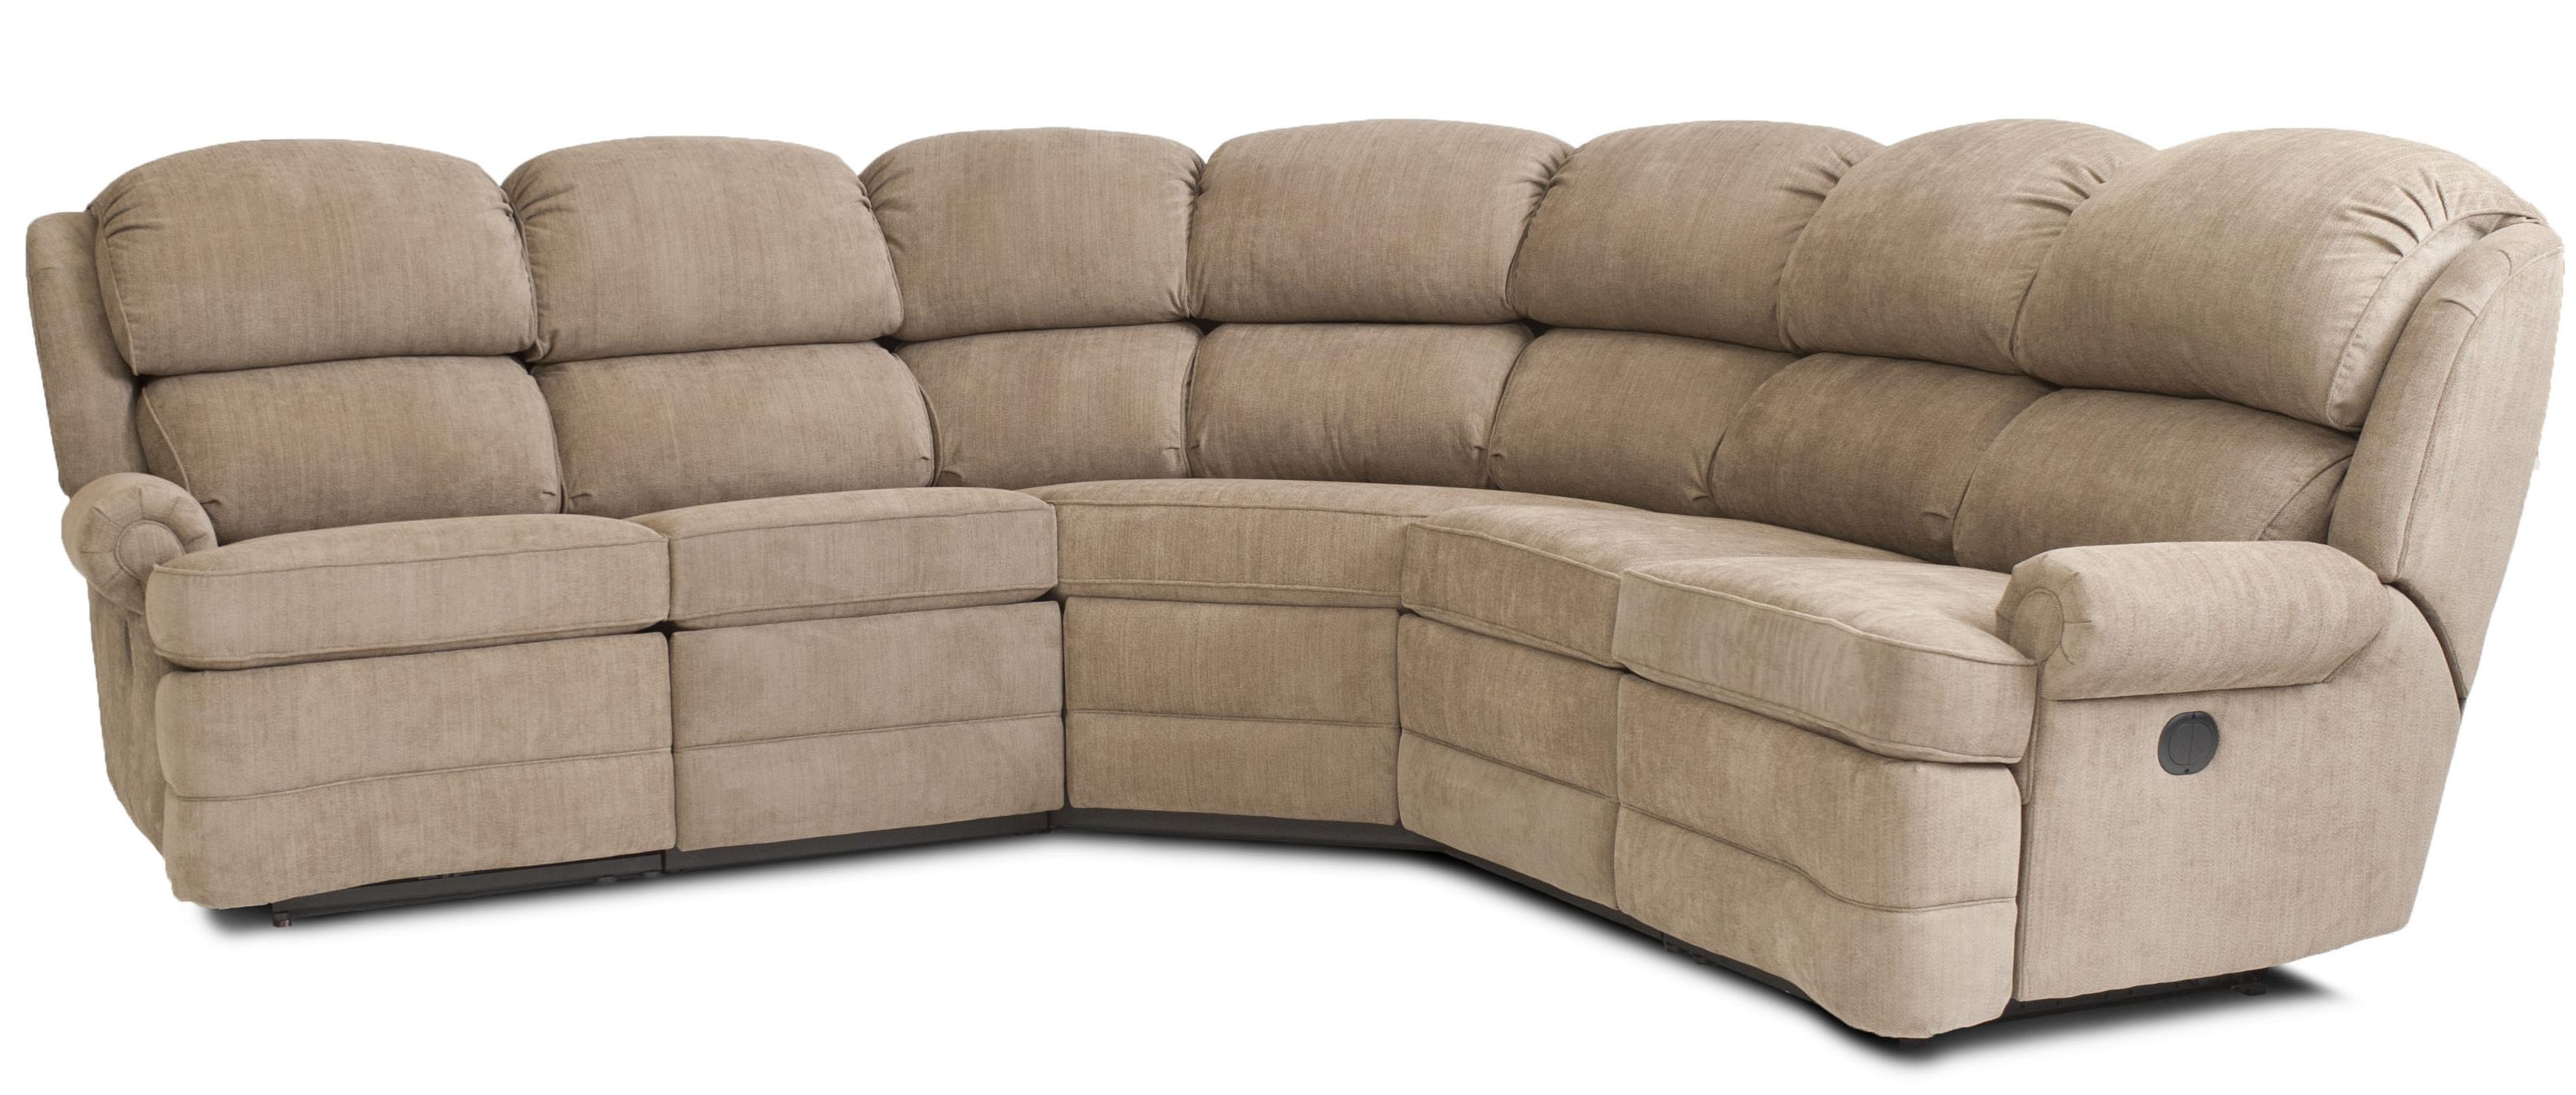 Transitional 5-Piece Reclining Sectional Sofa with Small Rolled Arms  sc 1 st  Wolf Furniture & Transitional 5-Piece Reclining Sectional Sofa with Small Rolled ... islam-shia.org